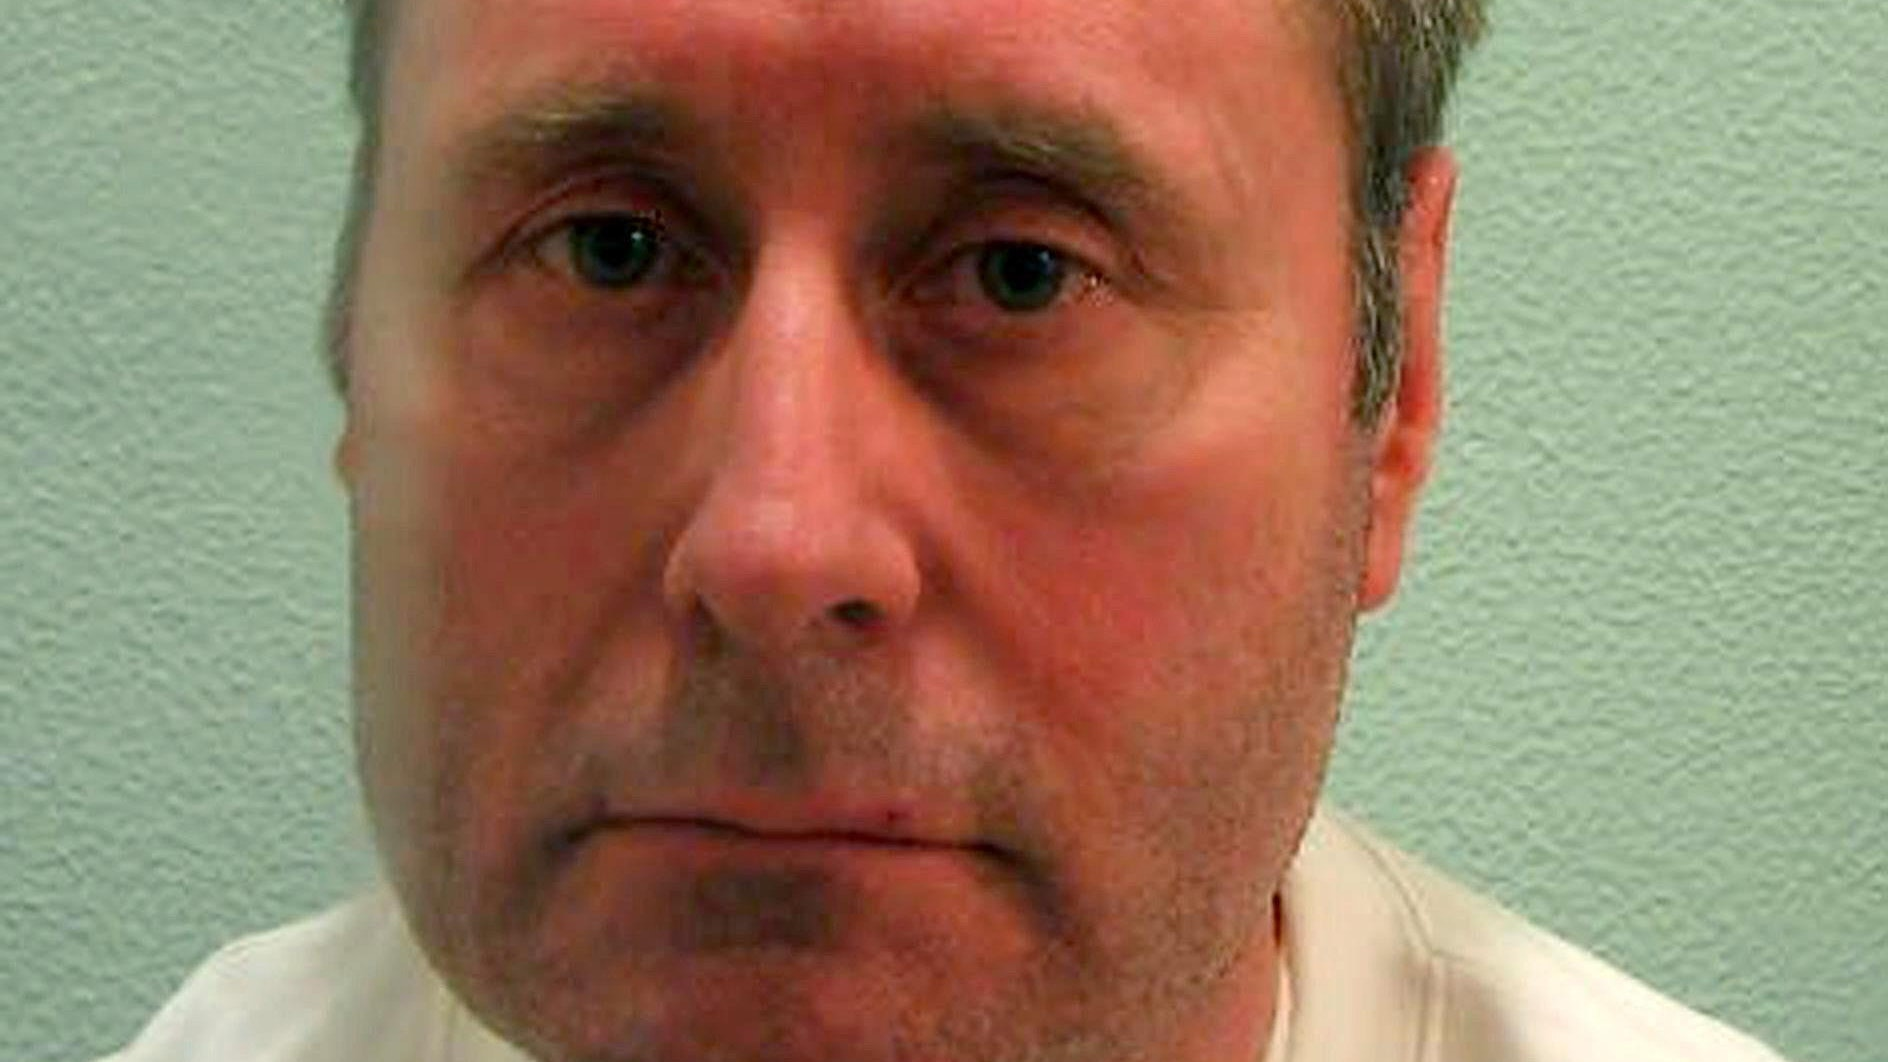 Black cab rapist John Worboys 'moved to London jail'